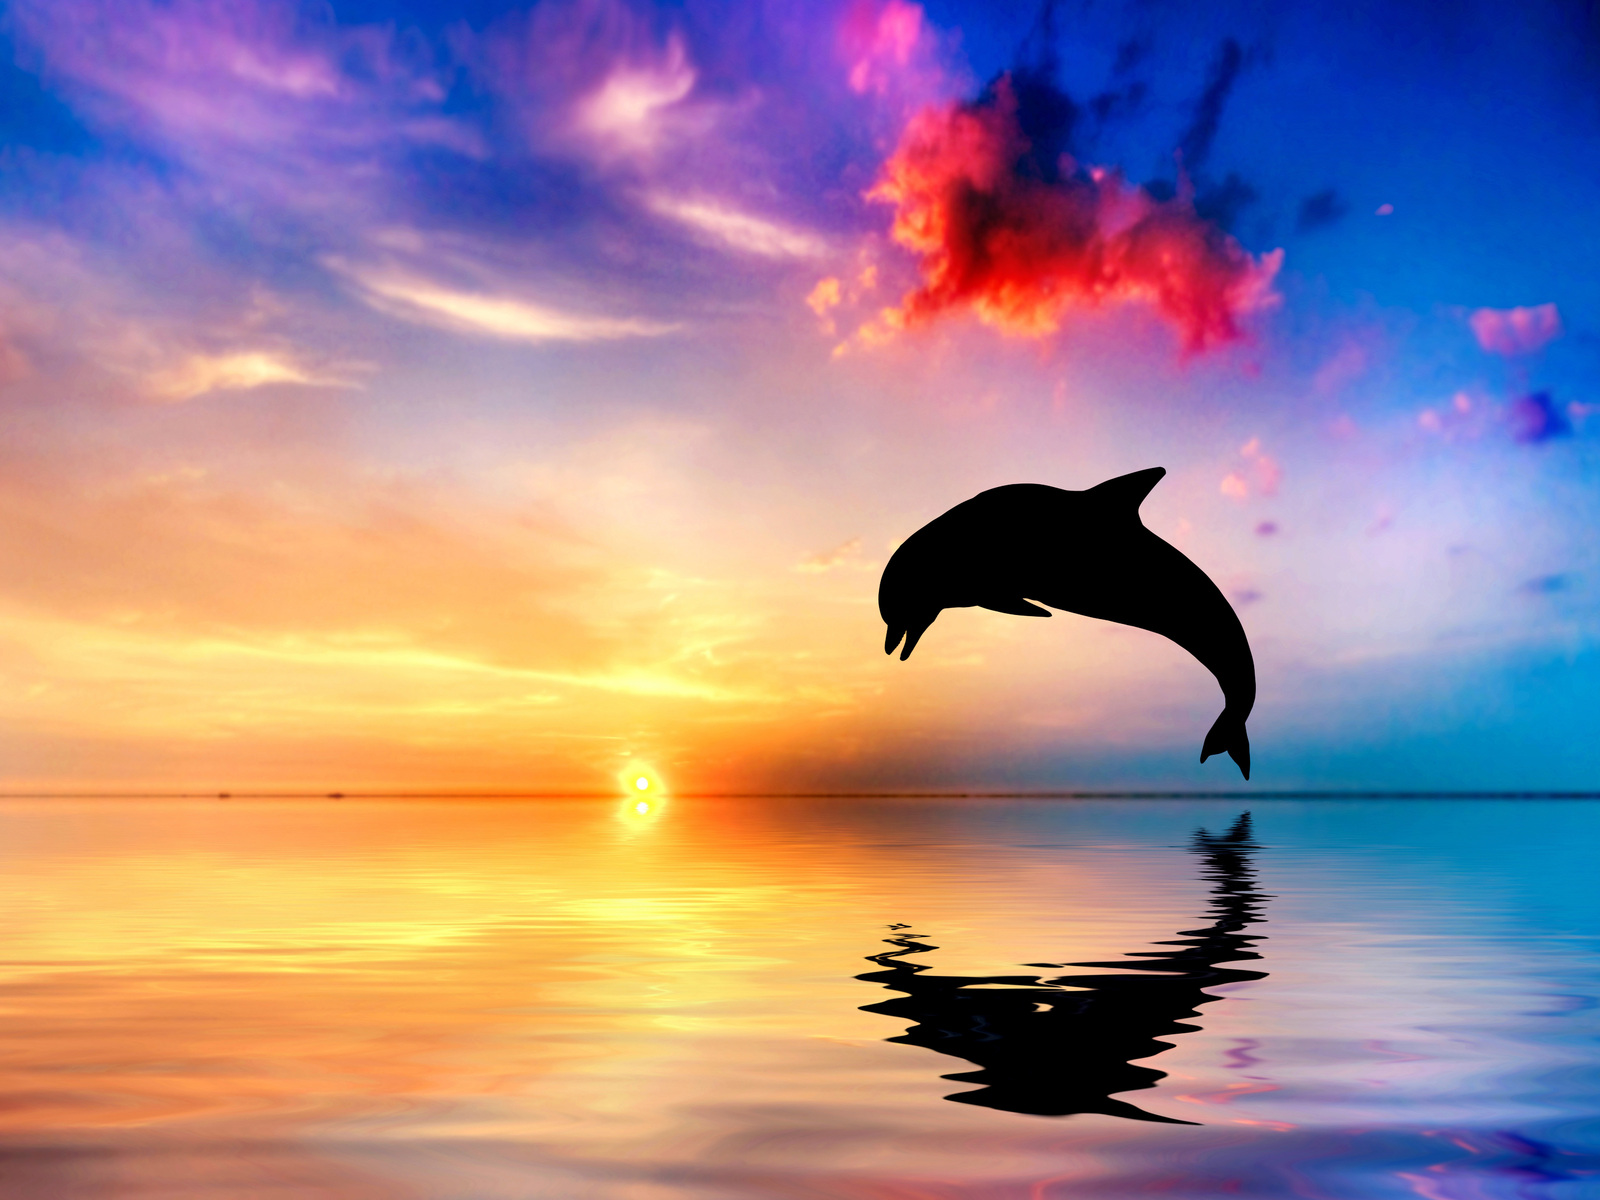 dolphin-jumping-out-of-water-sunset-view-4k-b3.jpg